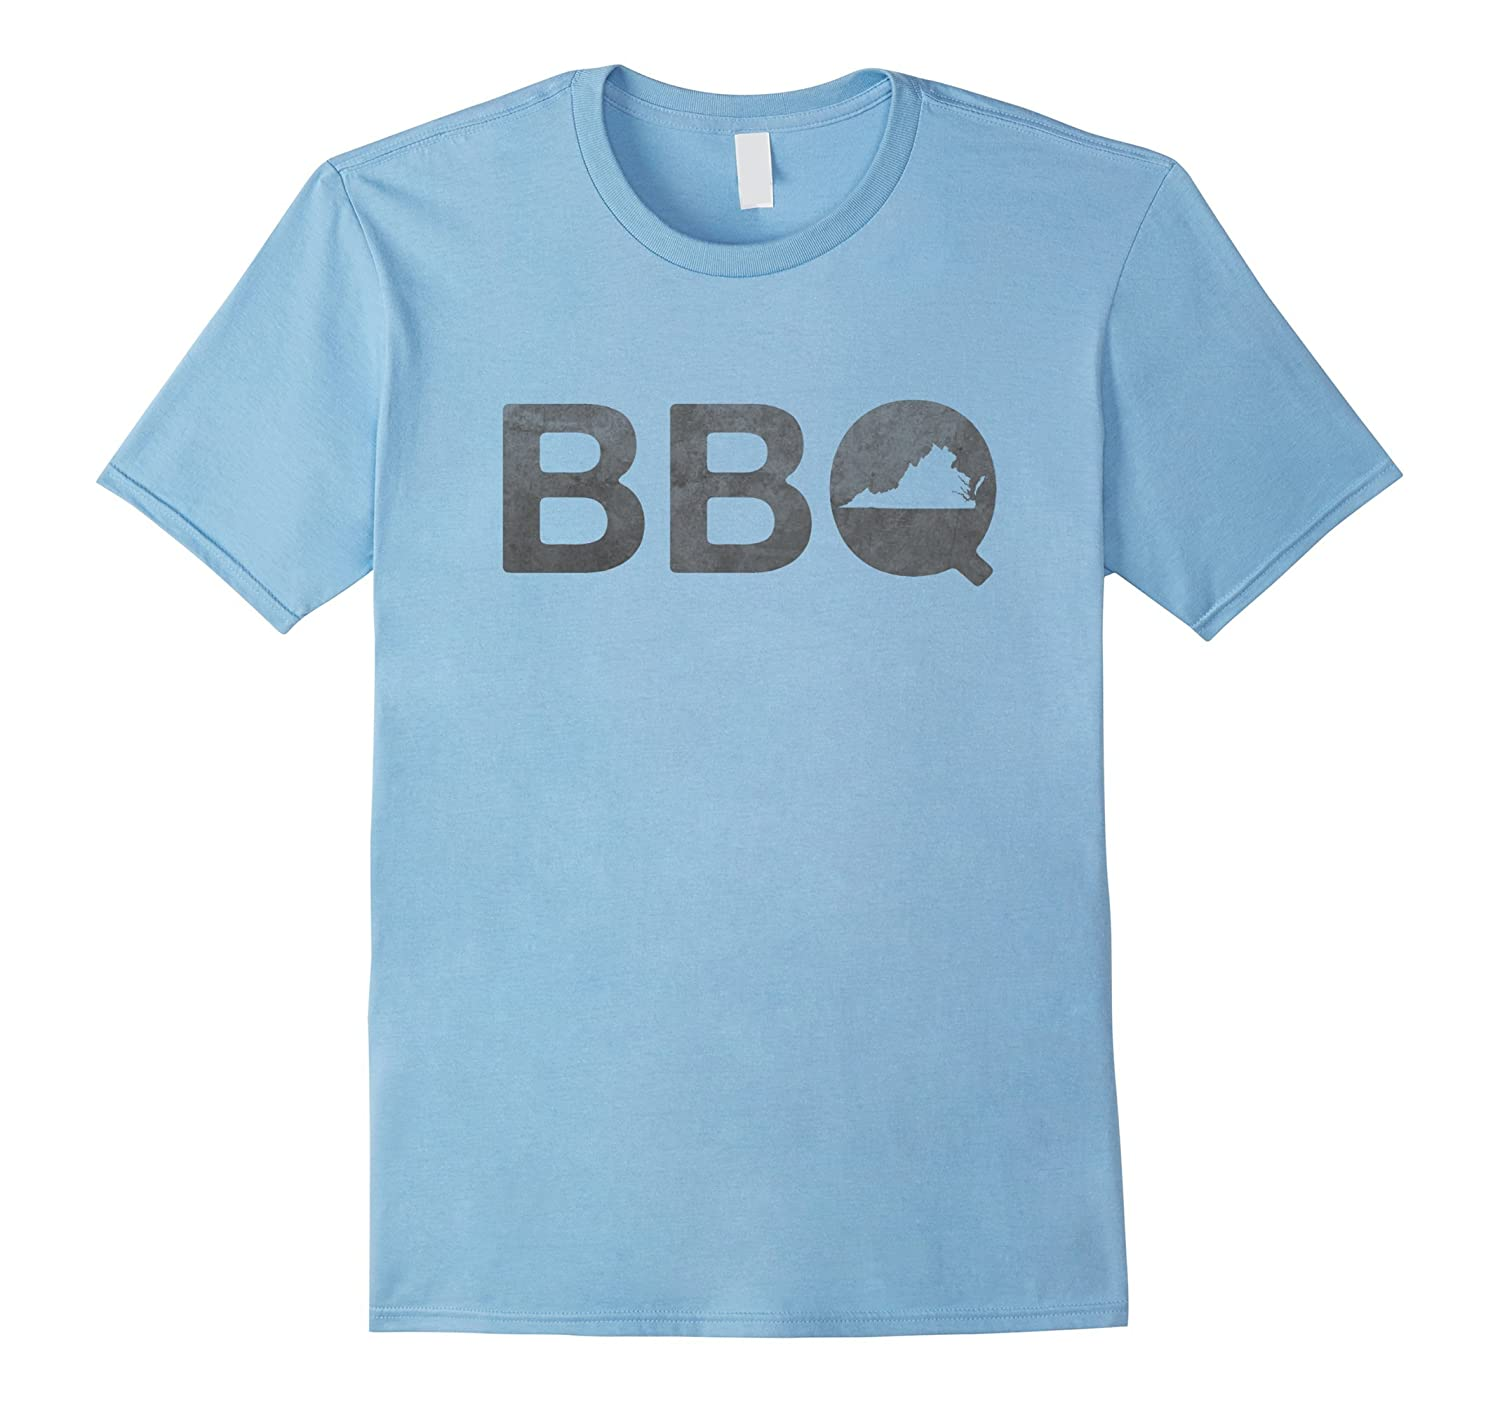 Virginia BBQ T-Shirt Barbecue State Pride Tee-CD